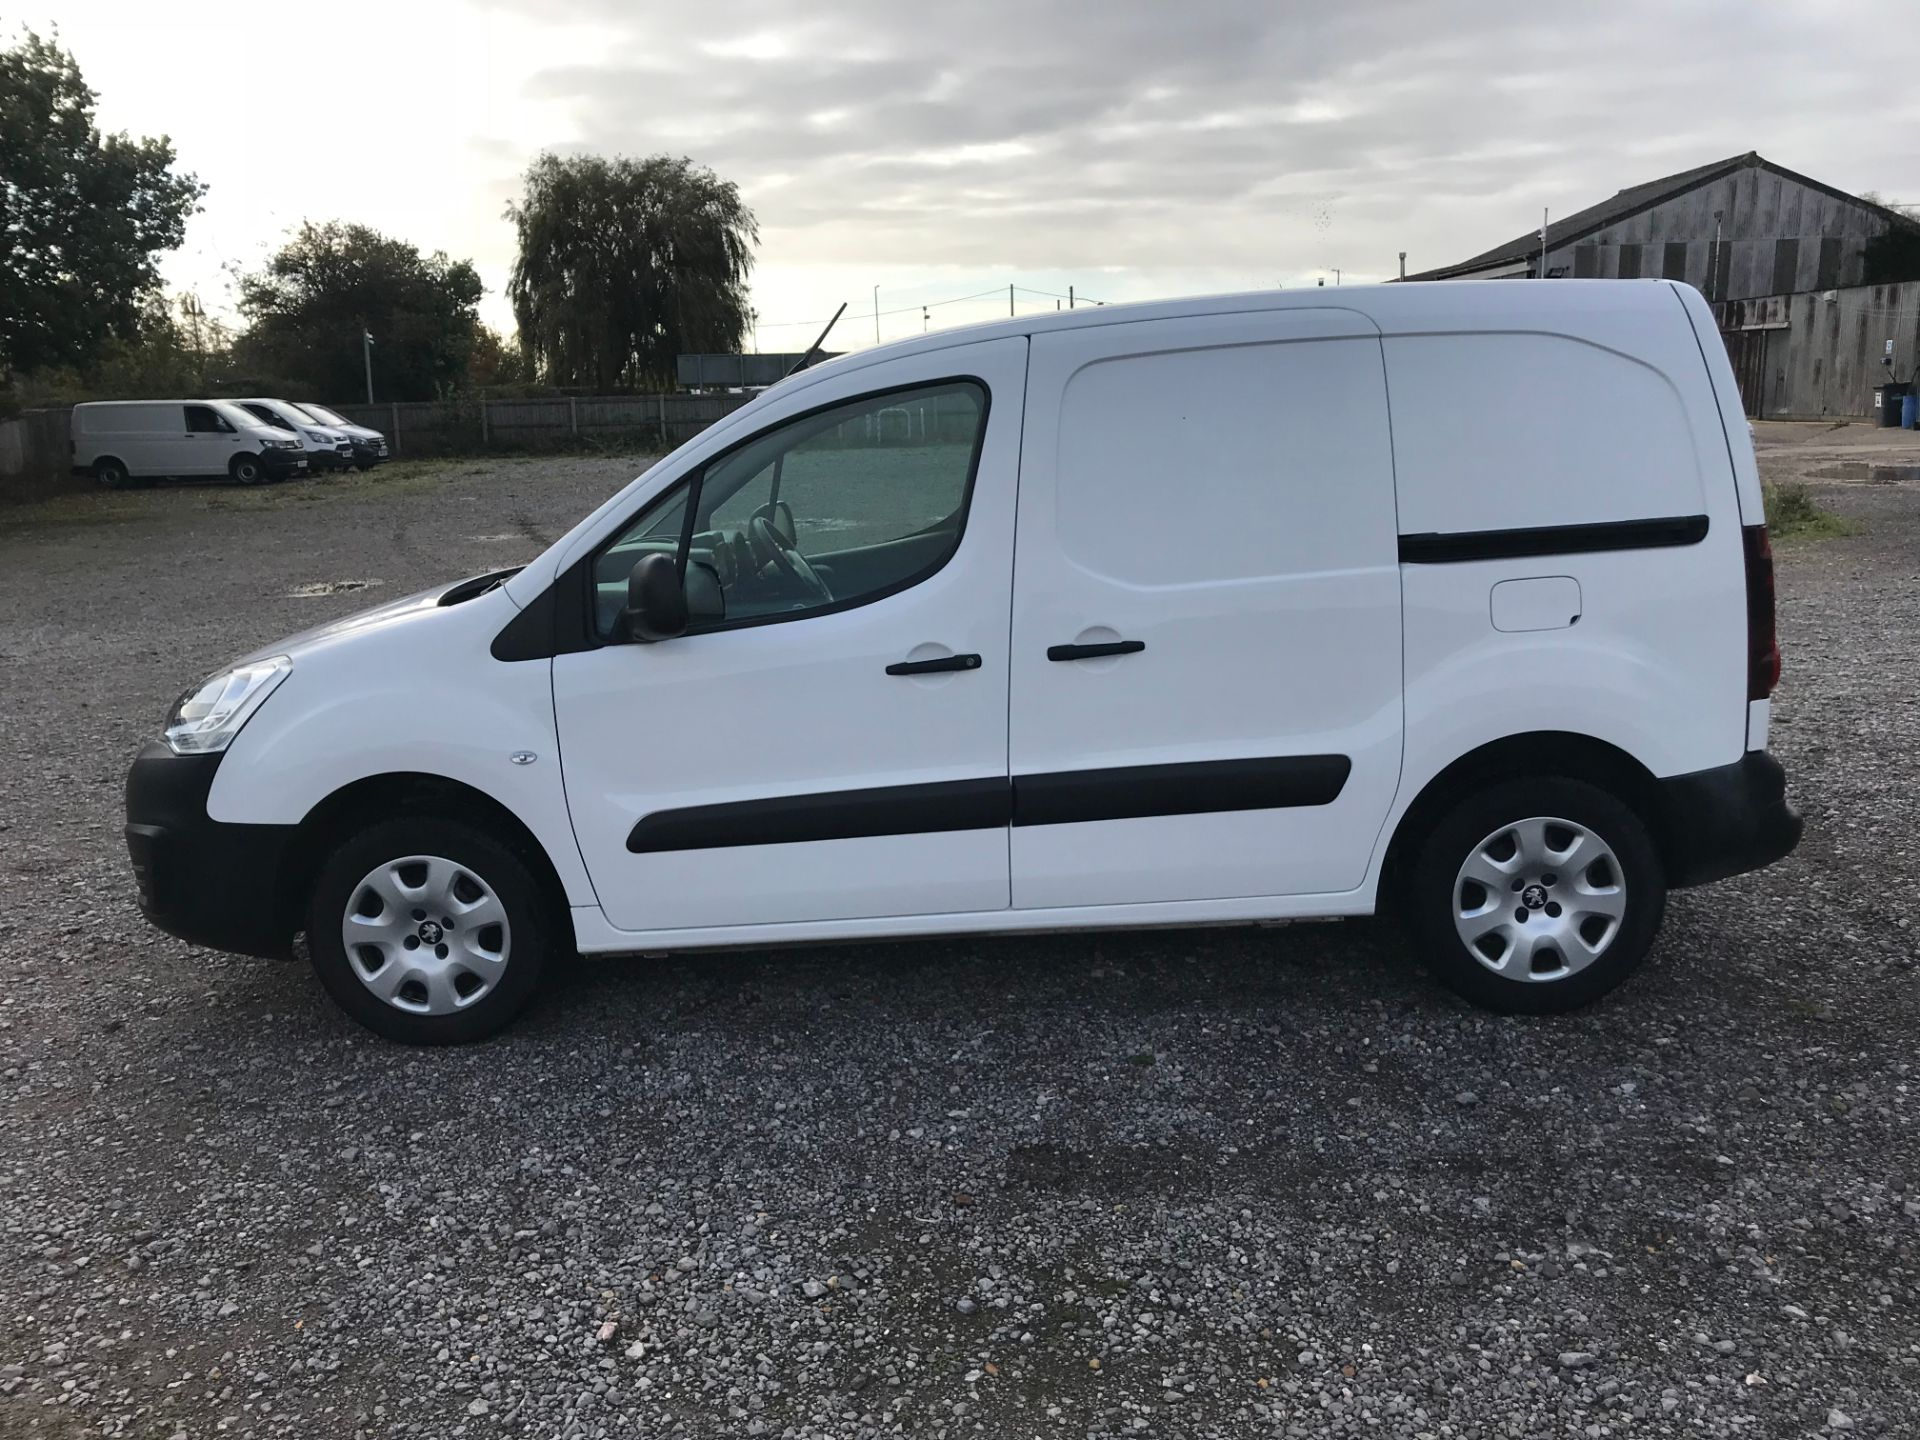 2018 Peugeot Partner 850 1.6 Bluehdi 100 Professional Van [Non Ss]*Restricted to 69MPH* (NV18PXR) Image 7